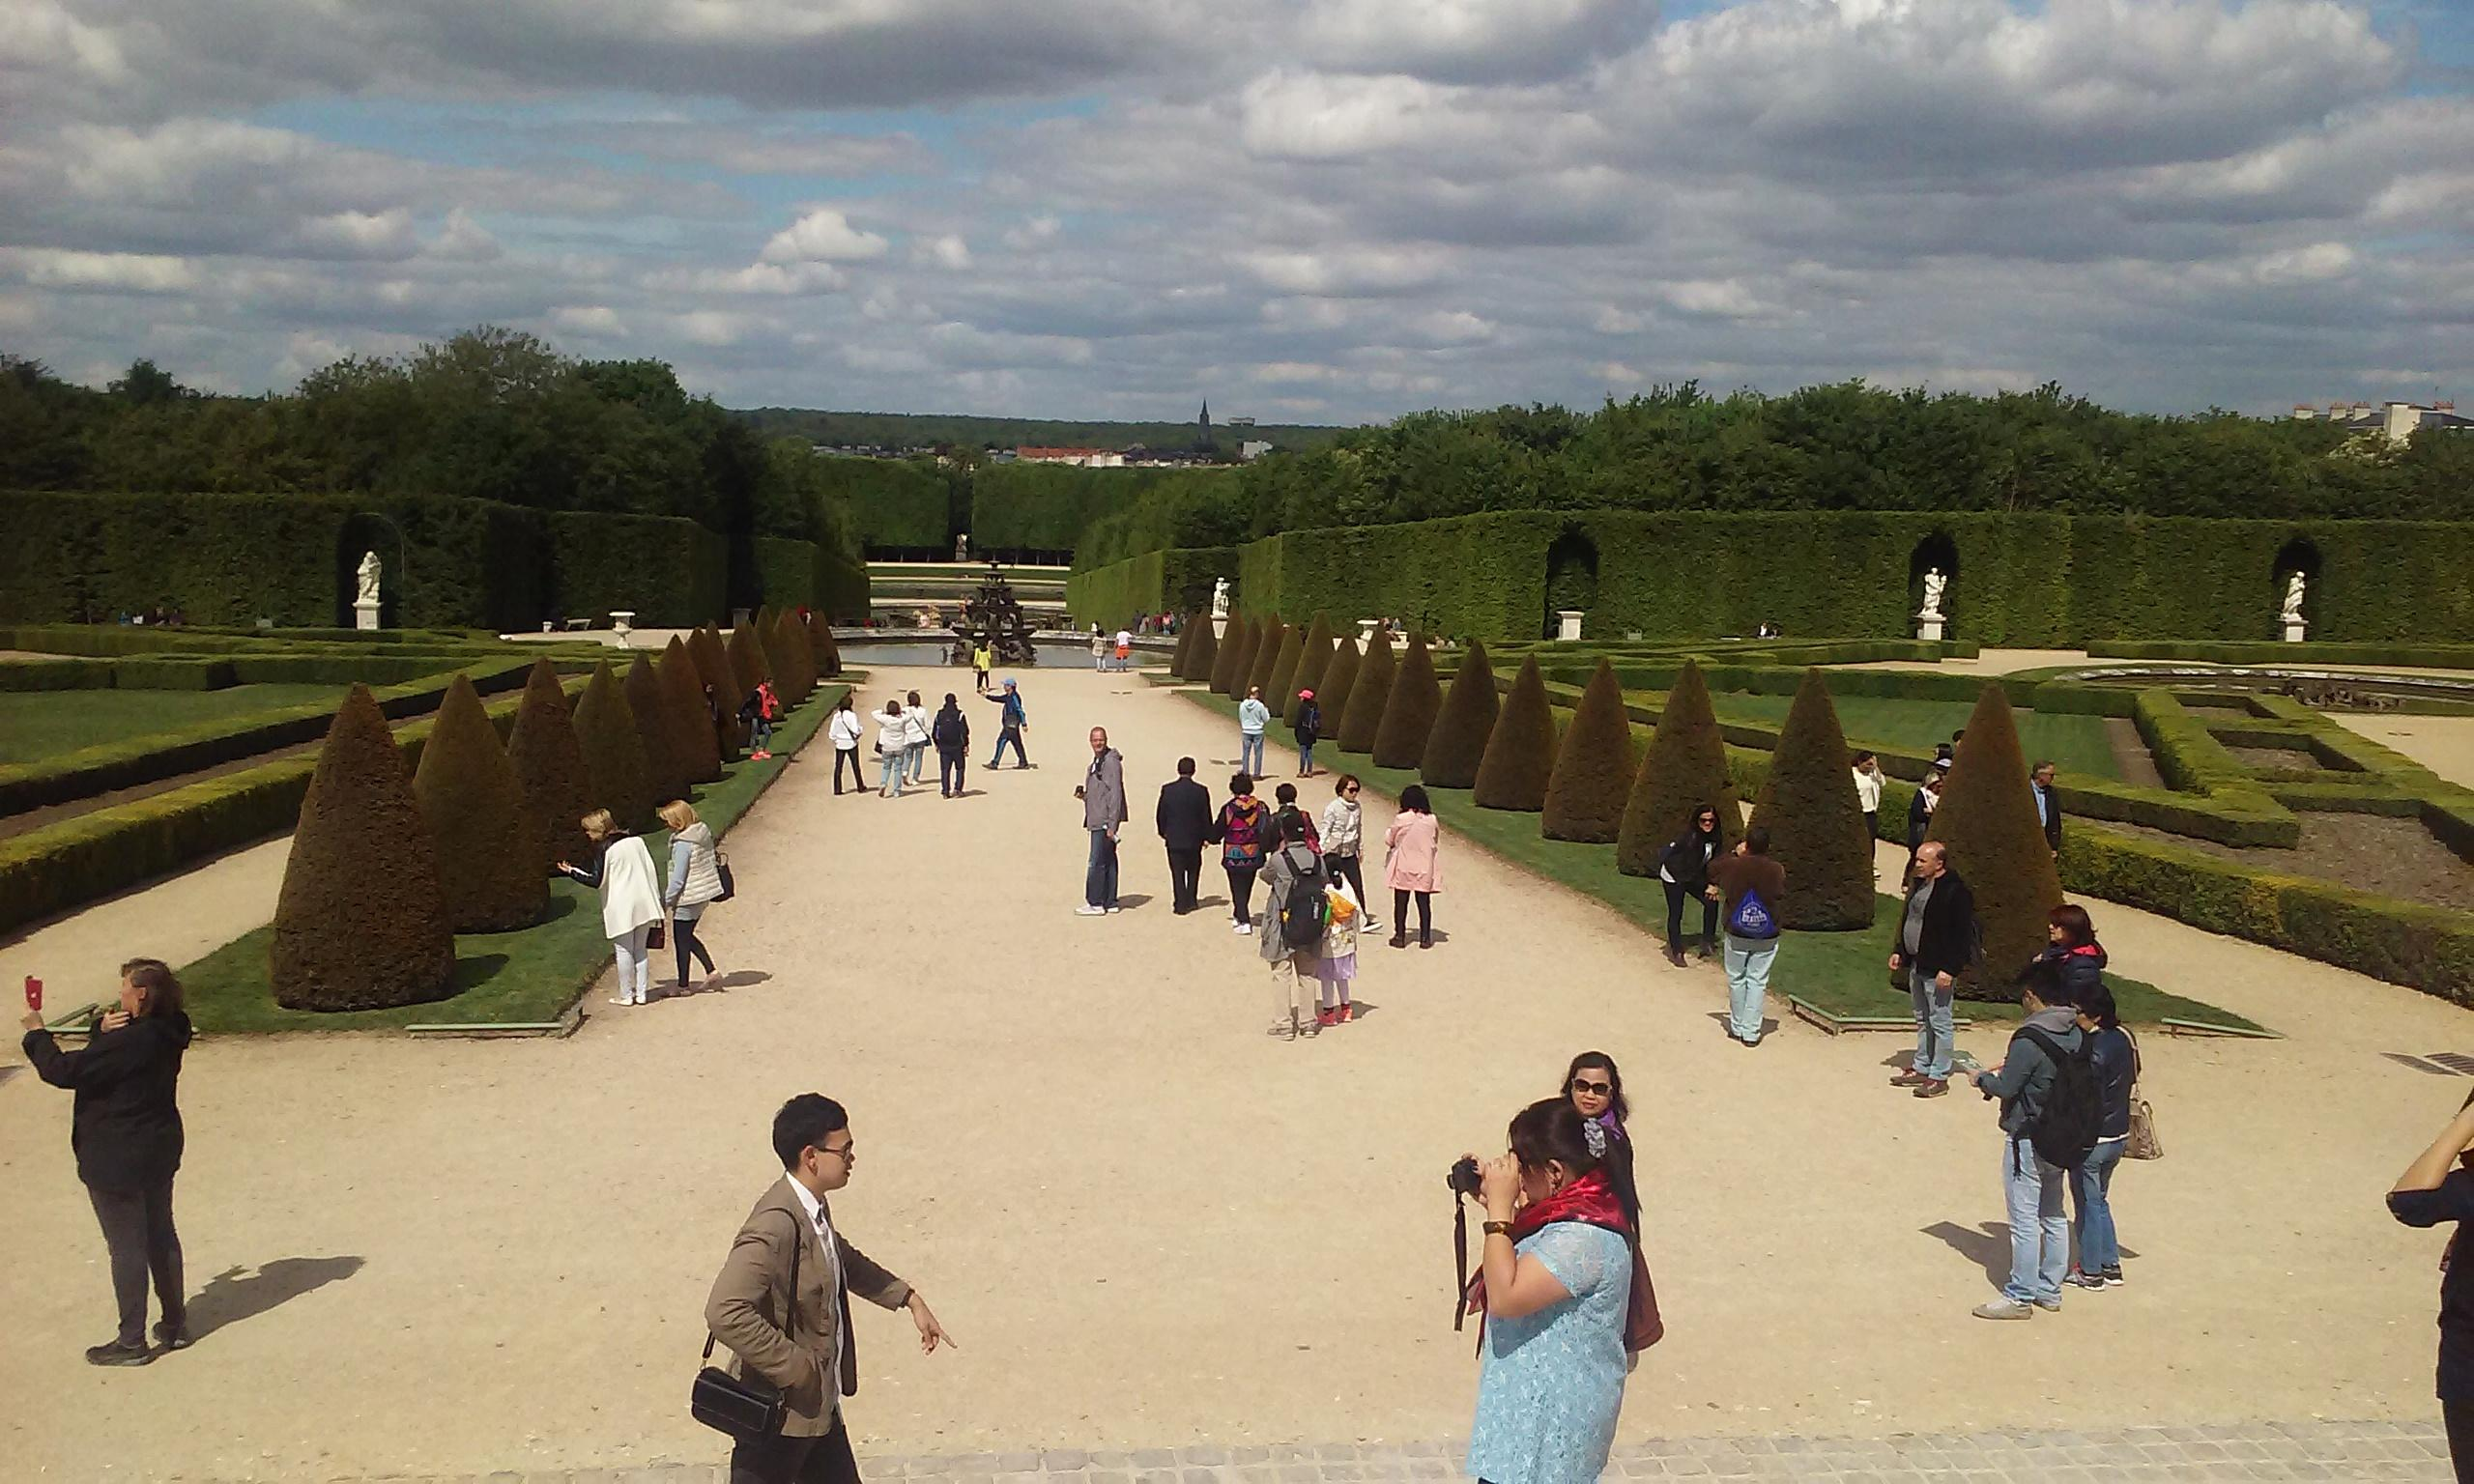 The gardens of Versailles after leaving the palace through the back and looking to the rig